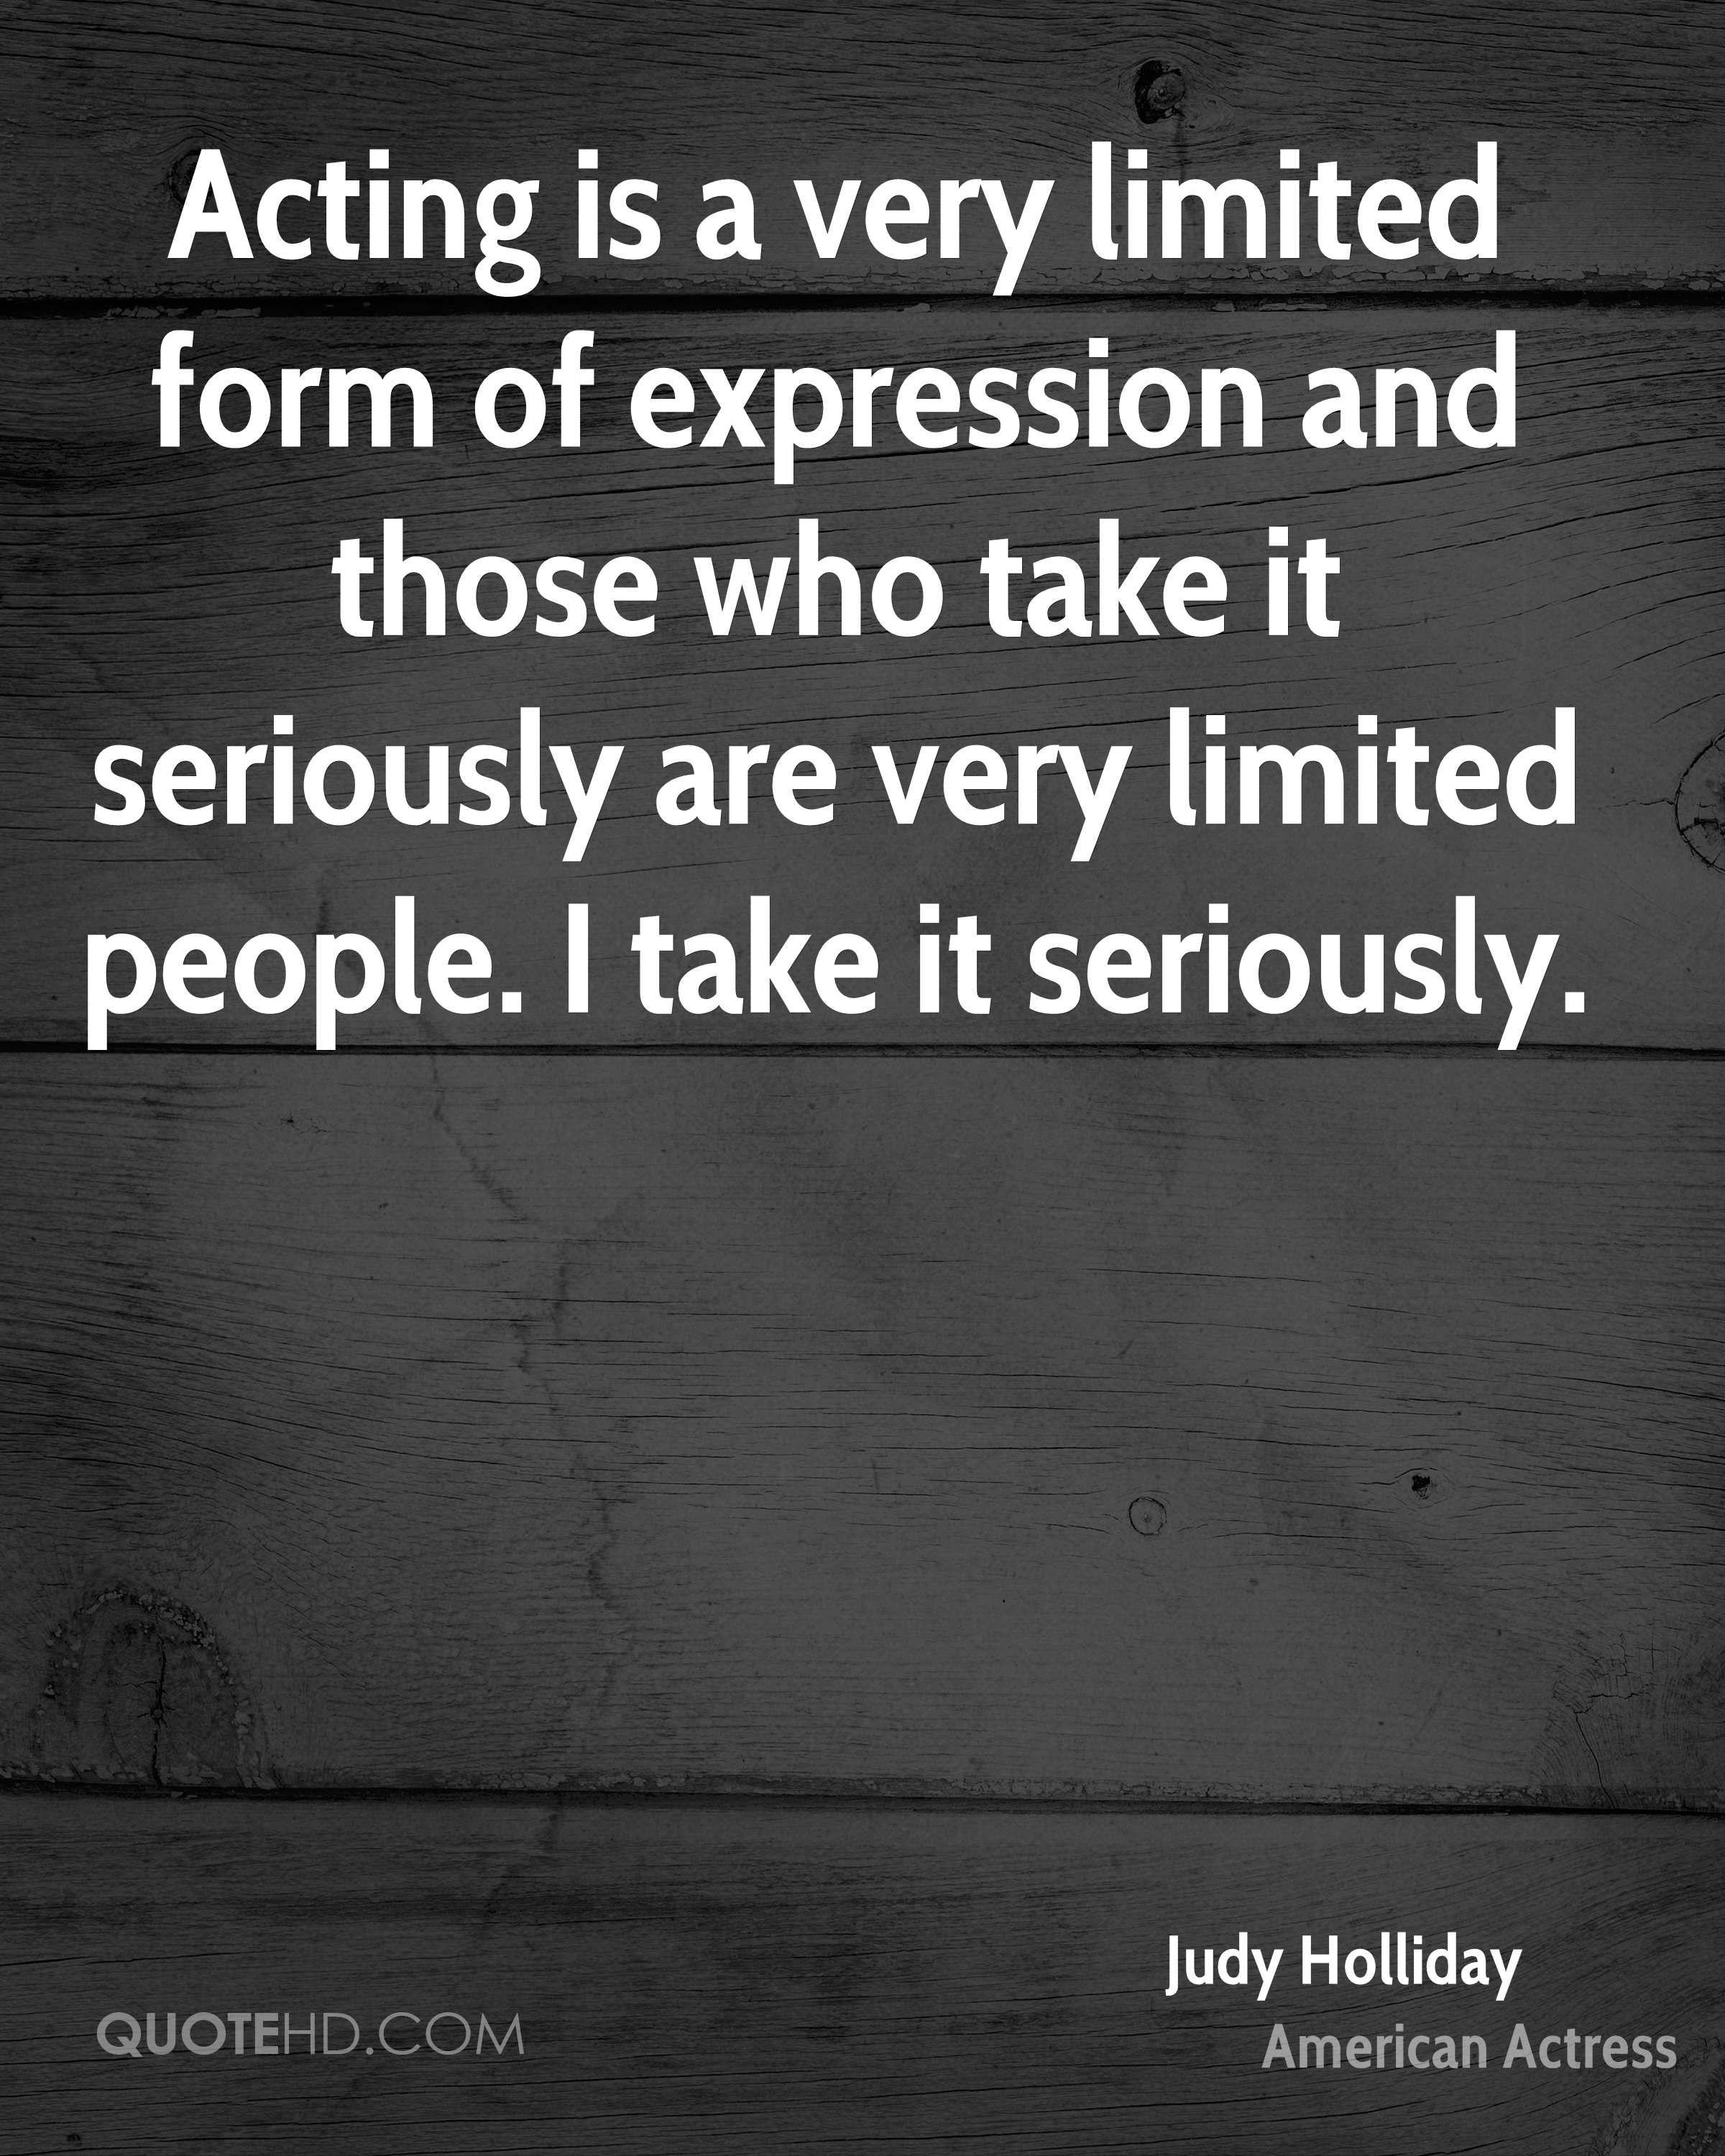 Acting is a very limited form of expression and those who take it seriously are very limited people. I take it seriously.